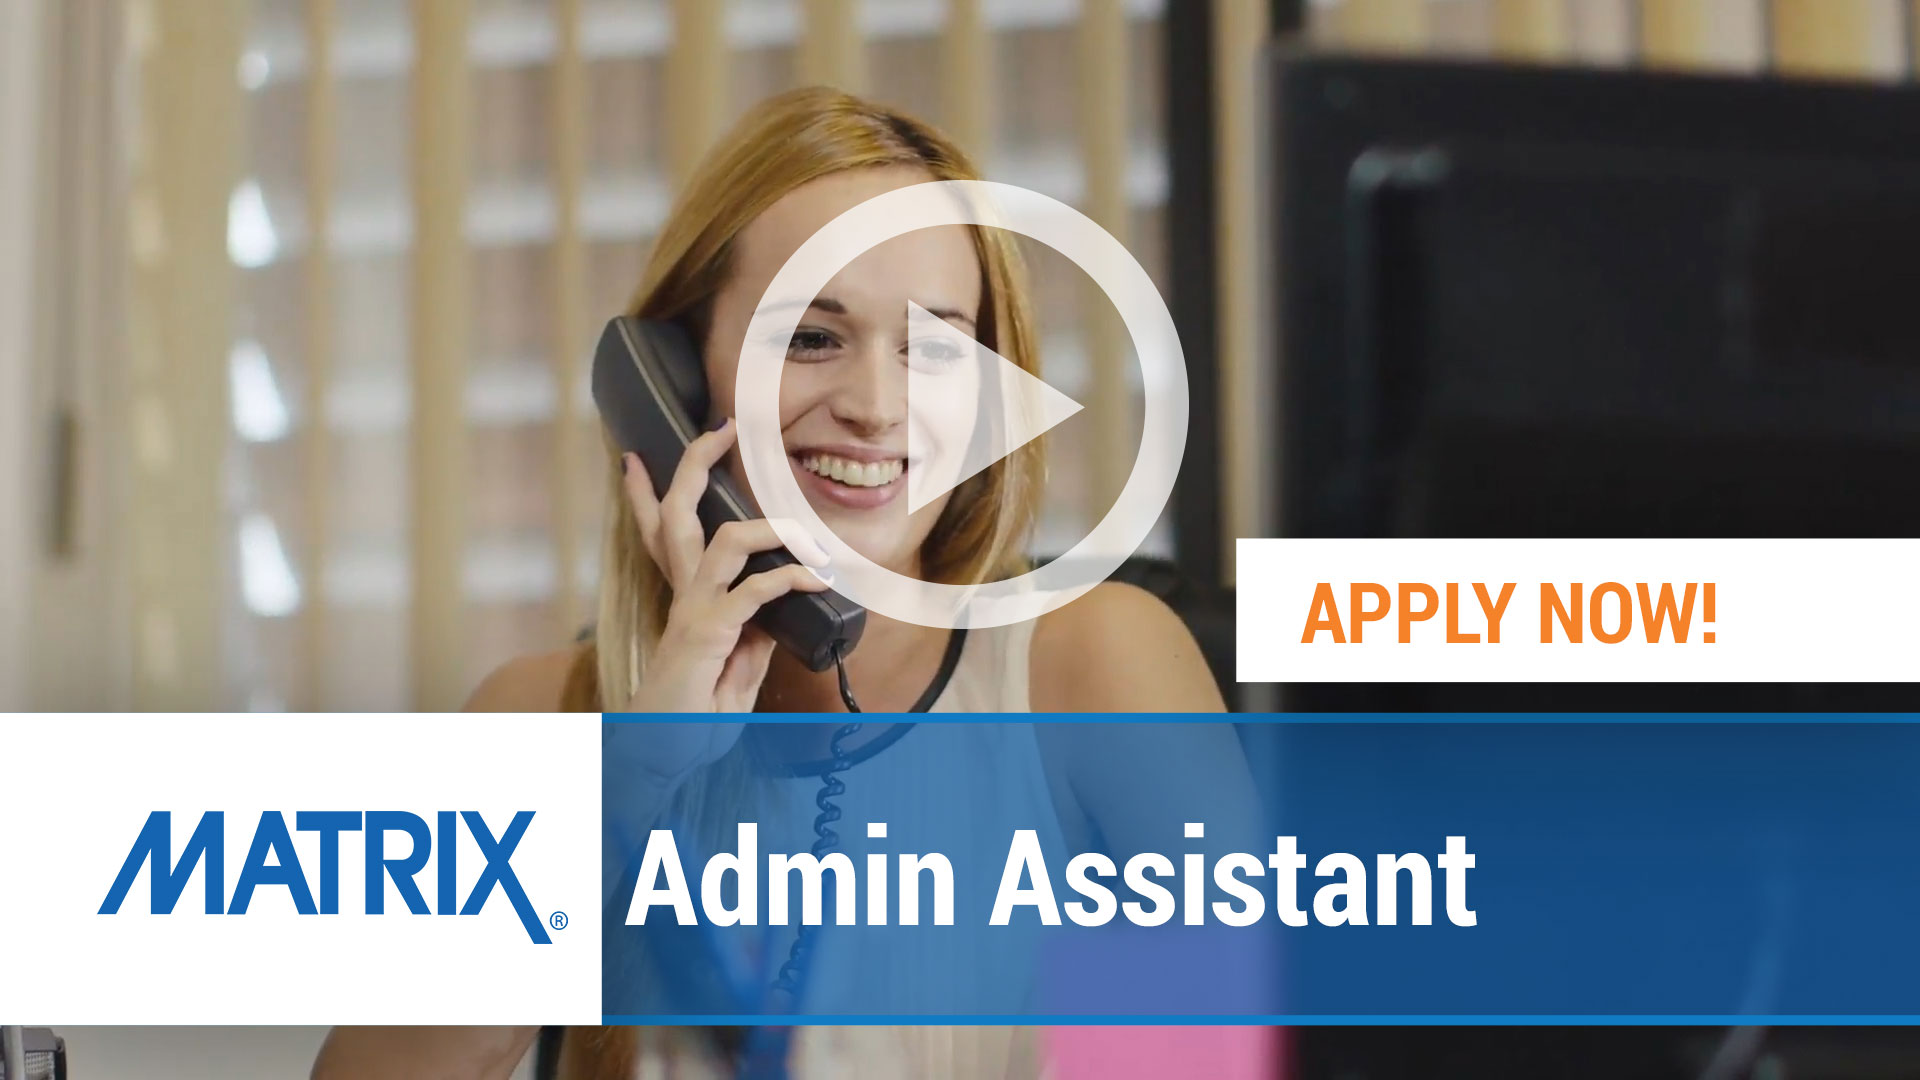 Watch our careers video for available job opening Admin Assistant in Varies